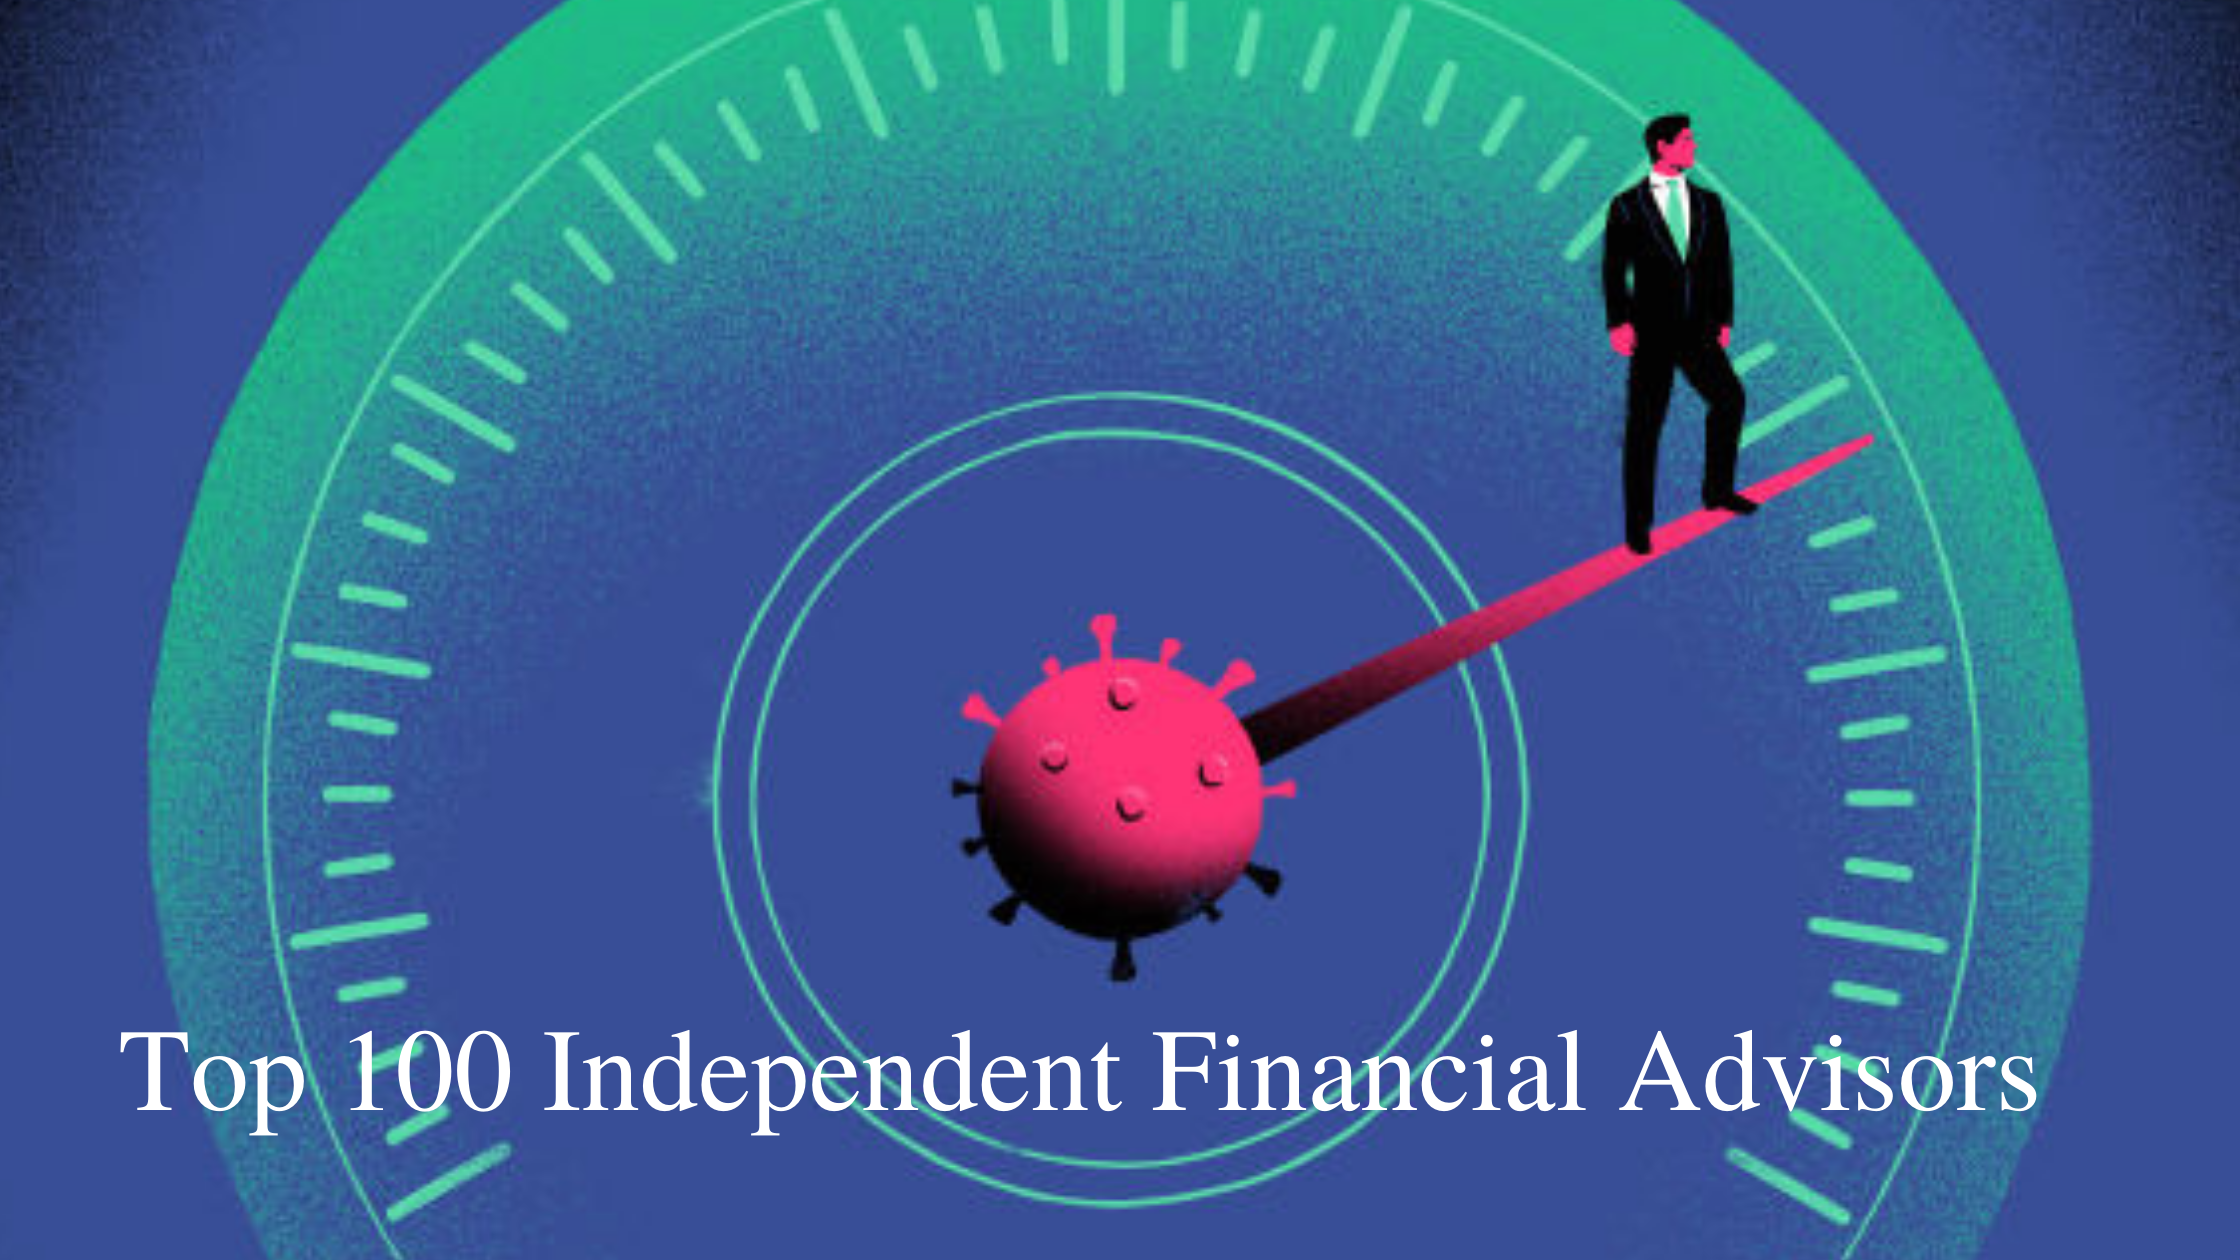 Jonathan Kuttin ranked among the Barron's Top 100 Independent Advisors for 2020